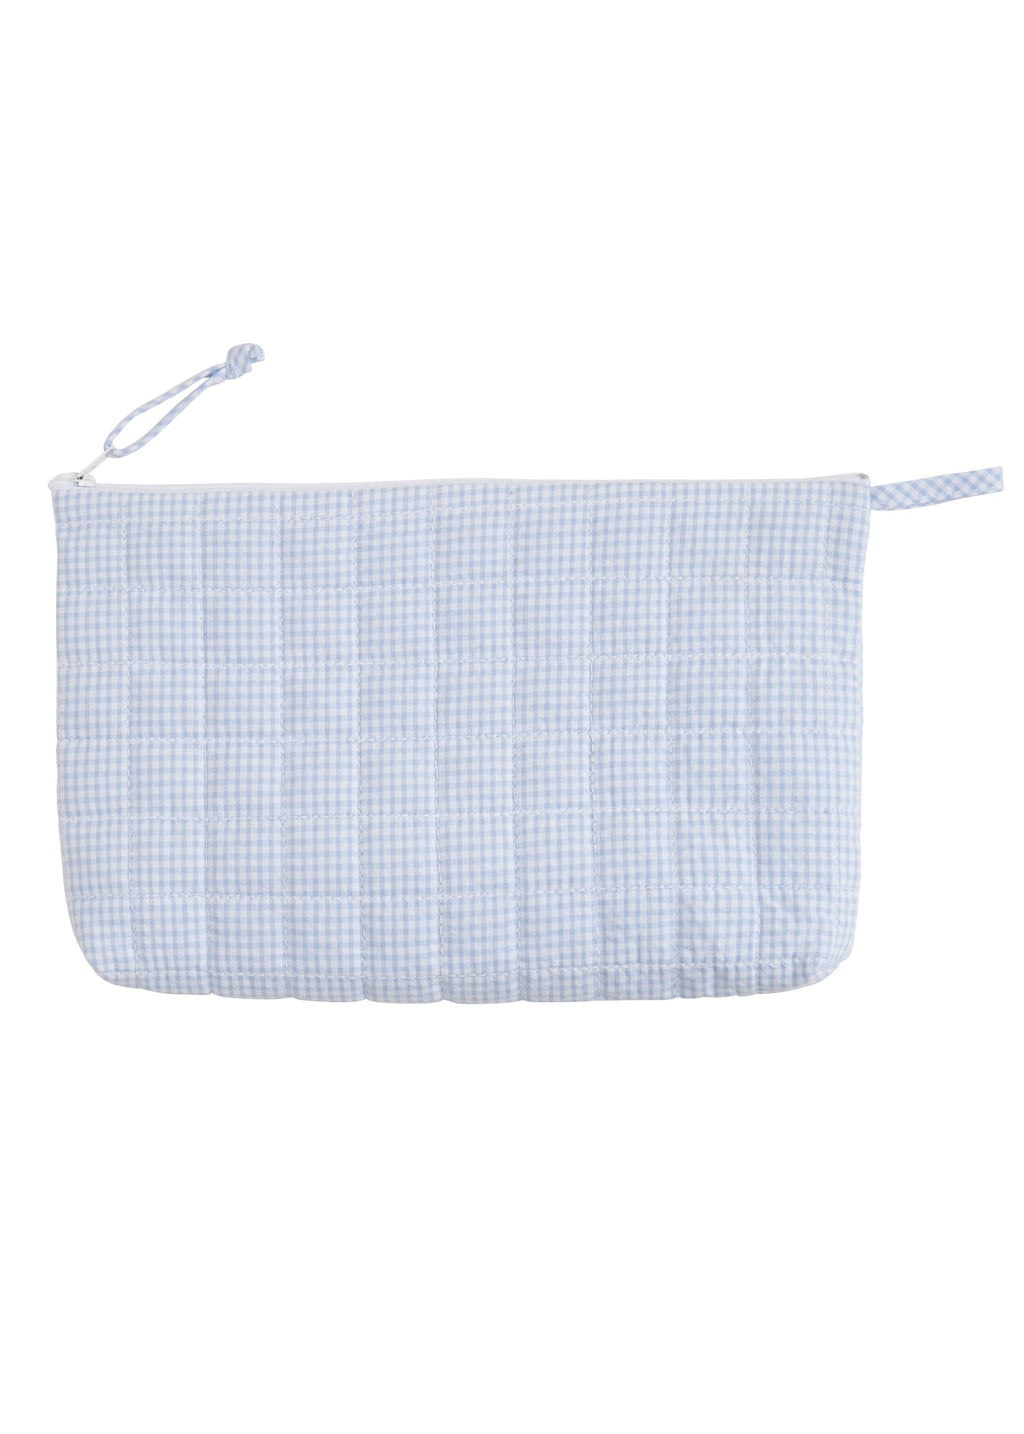 Quilted Blue Cosmetic Bag - Born Childrens Boutique